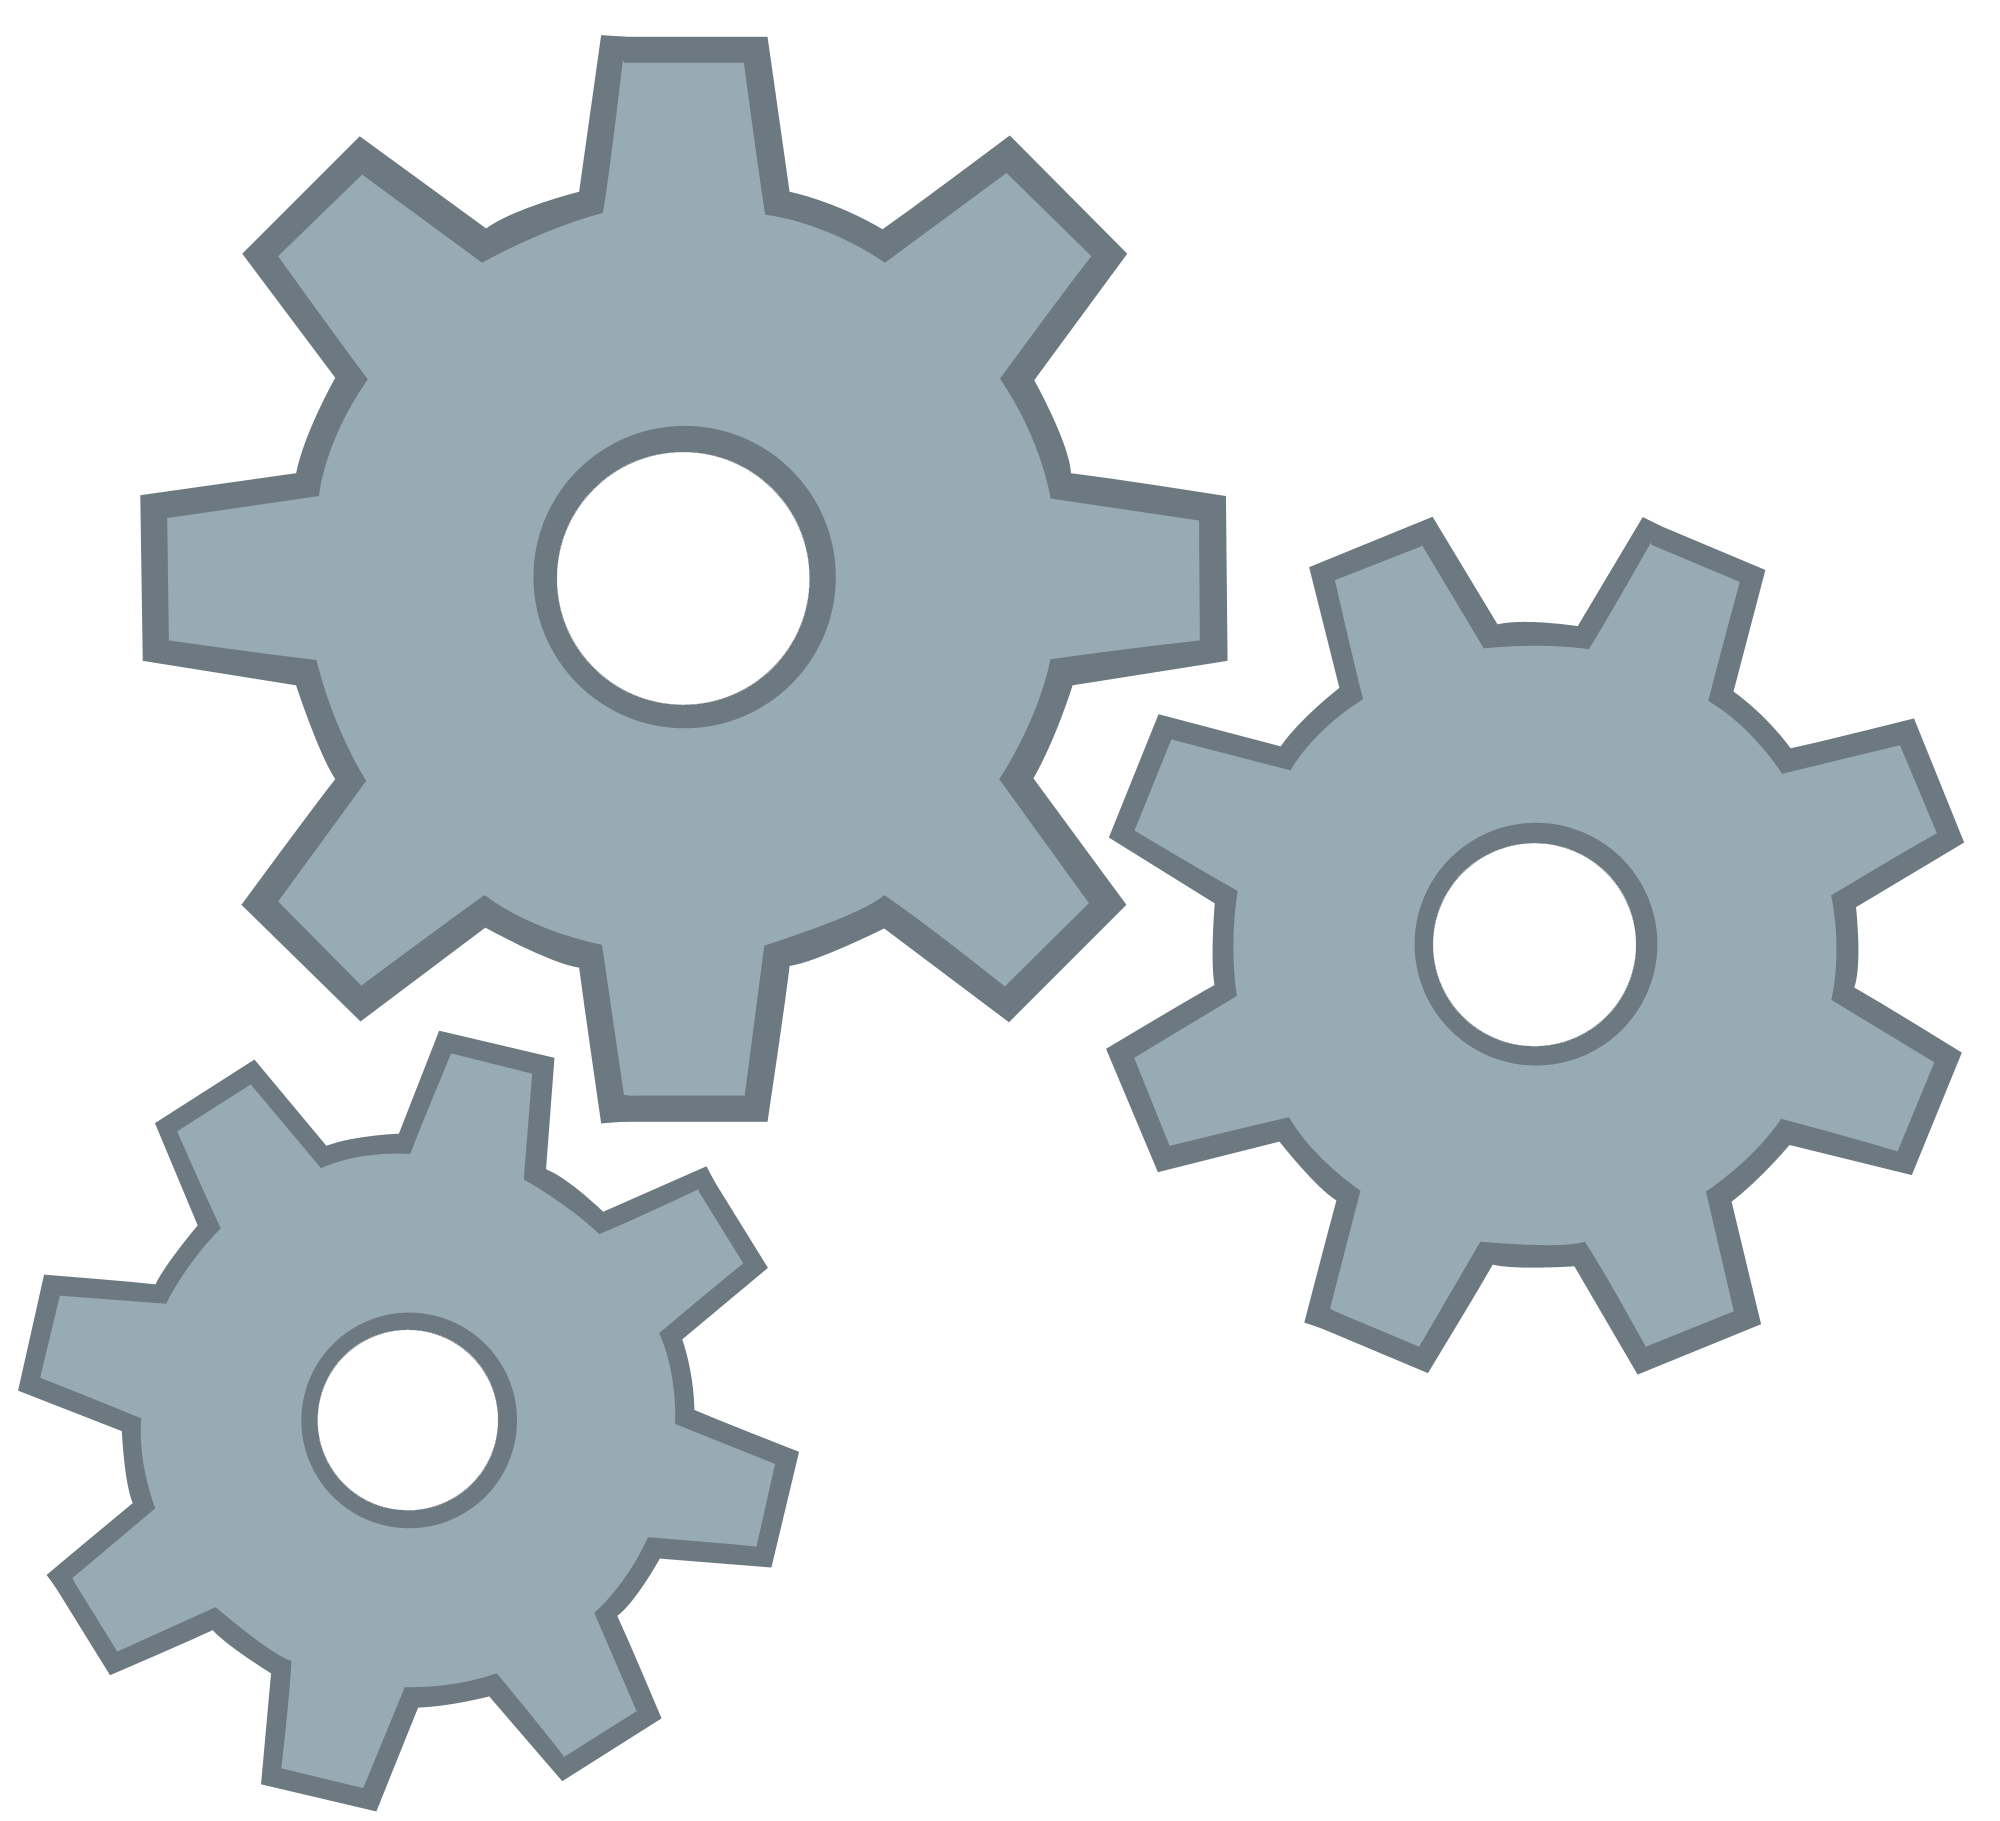 clip freeuse download Gear transparent background. Gears png images free